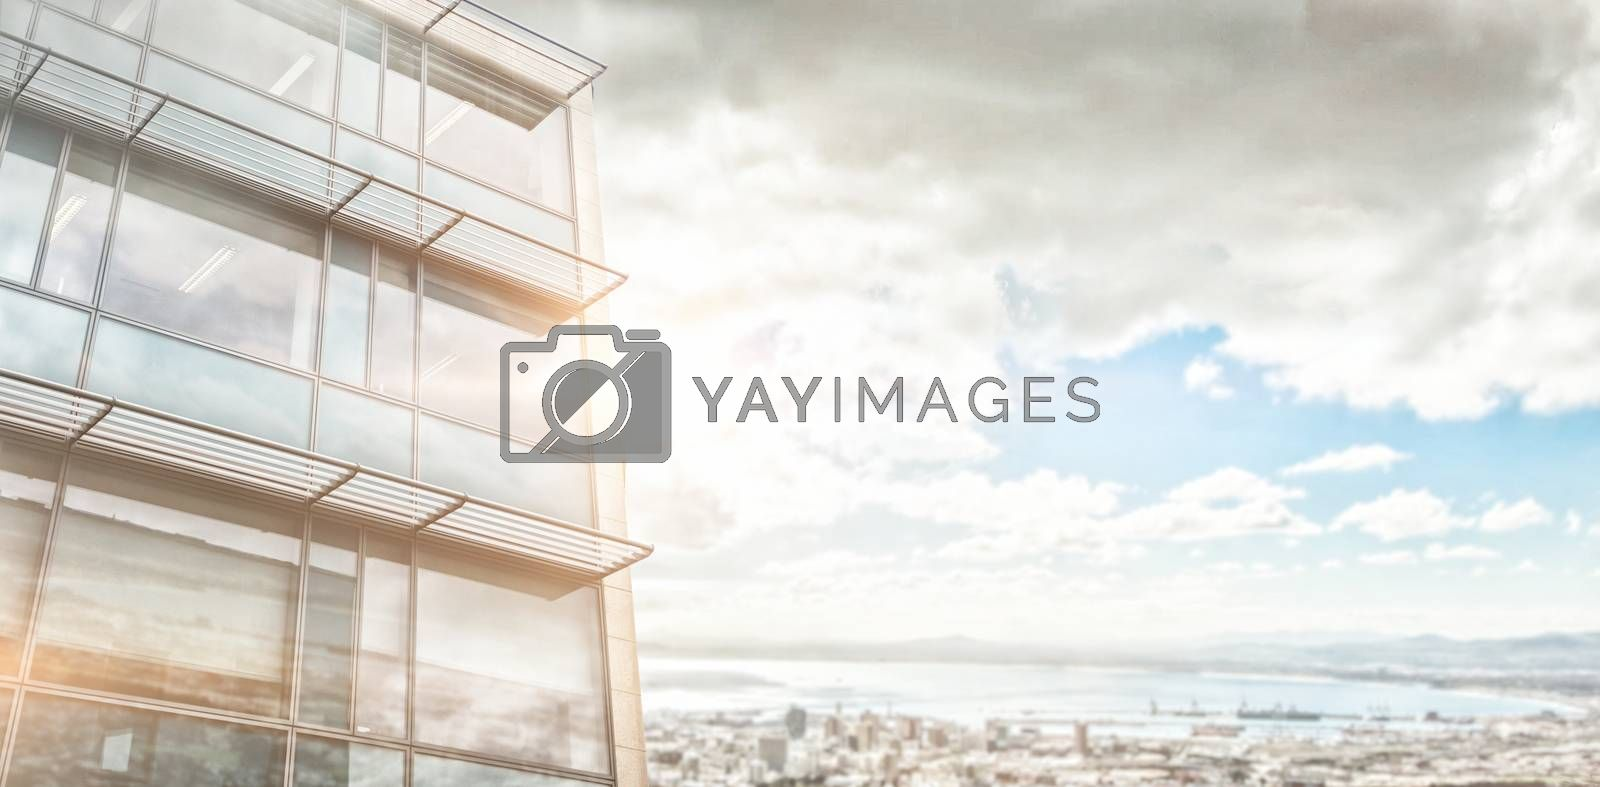 Low angle view of facade of office building against landscape of city and cloudy sky